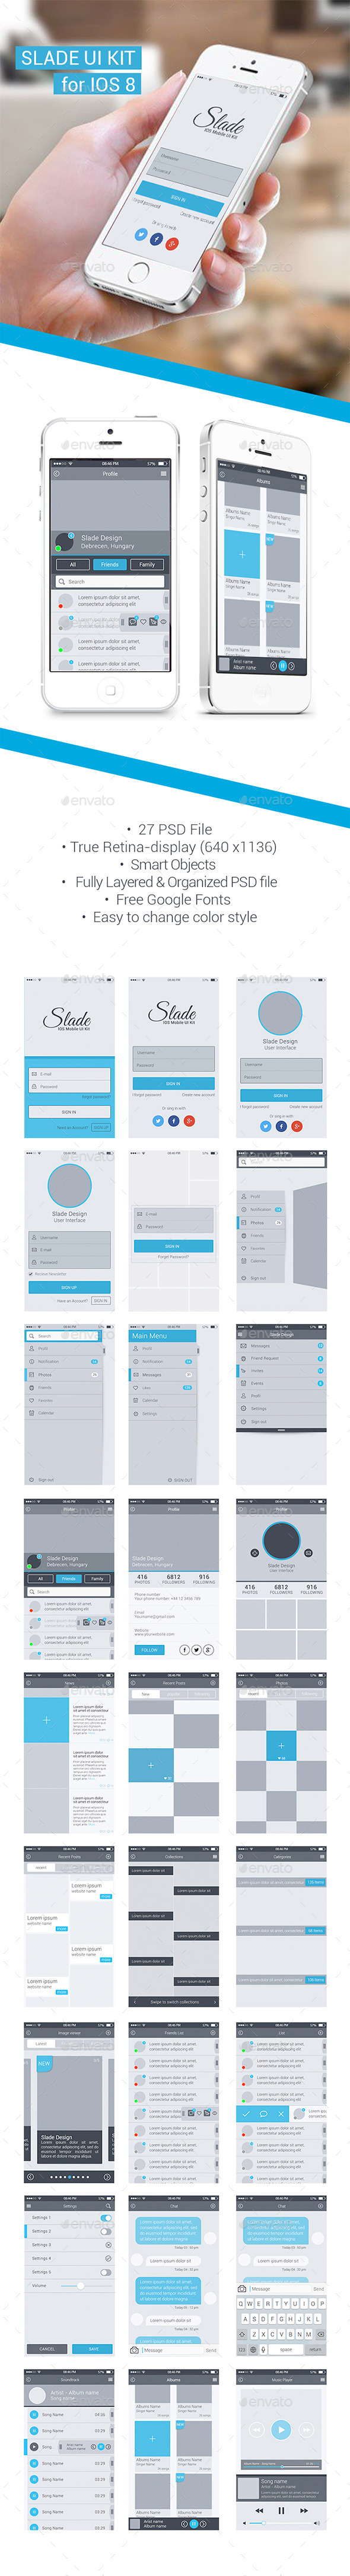 Slade UI Kit For IOS 8 - User Interfaces Web Elements